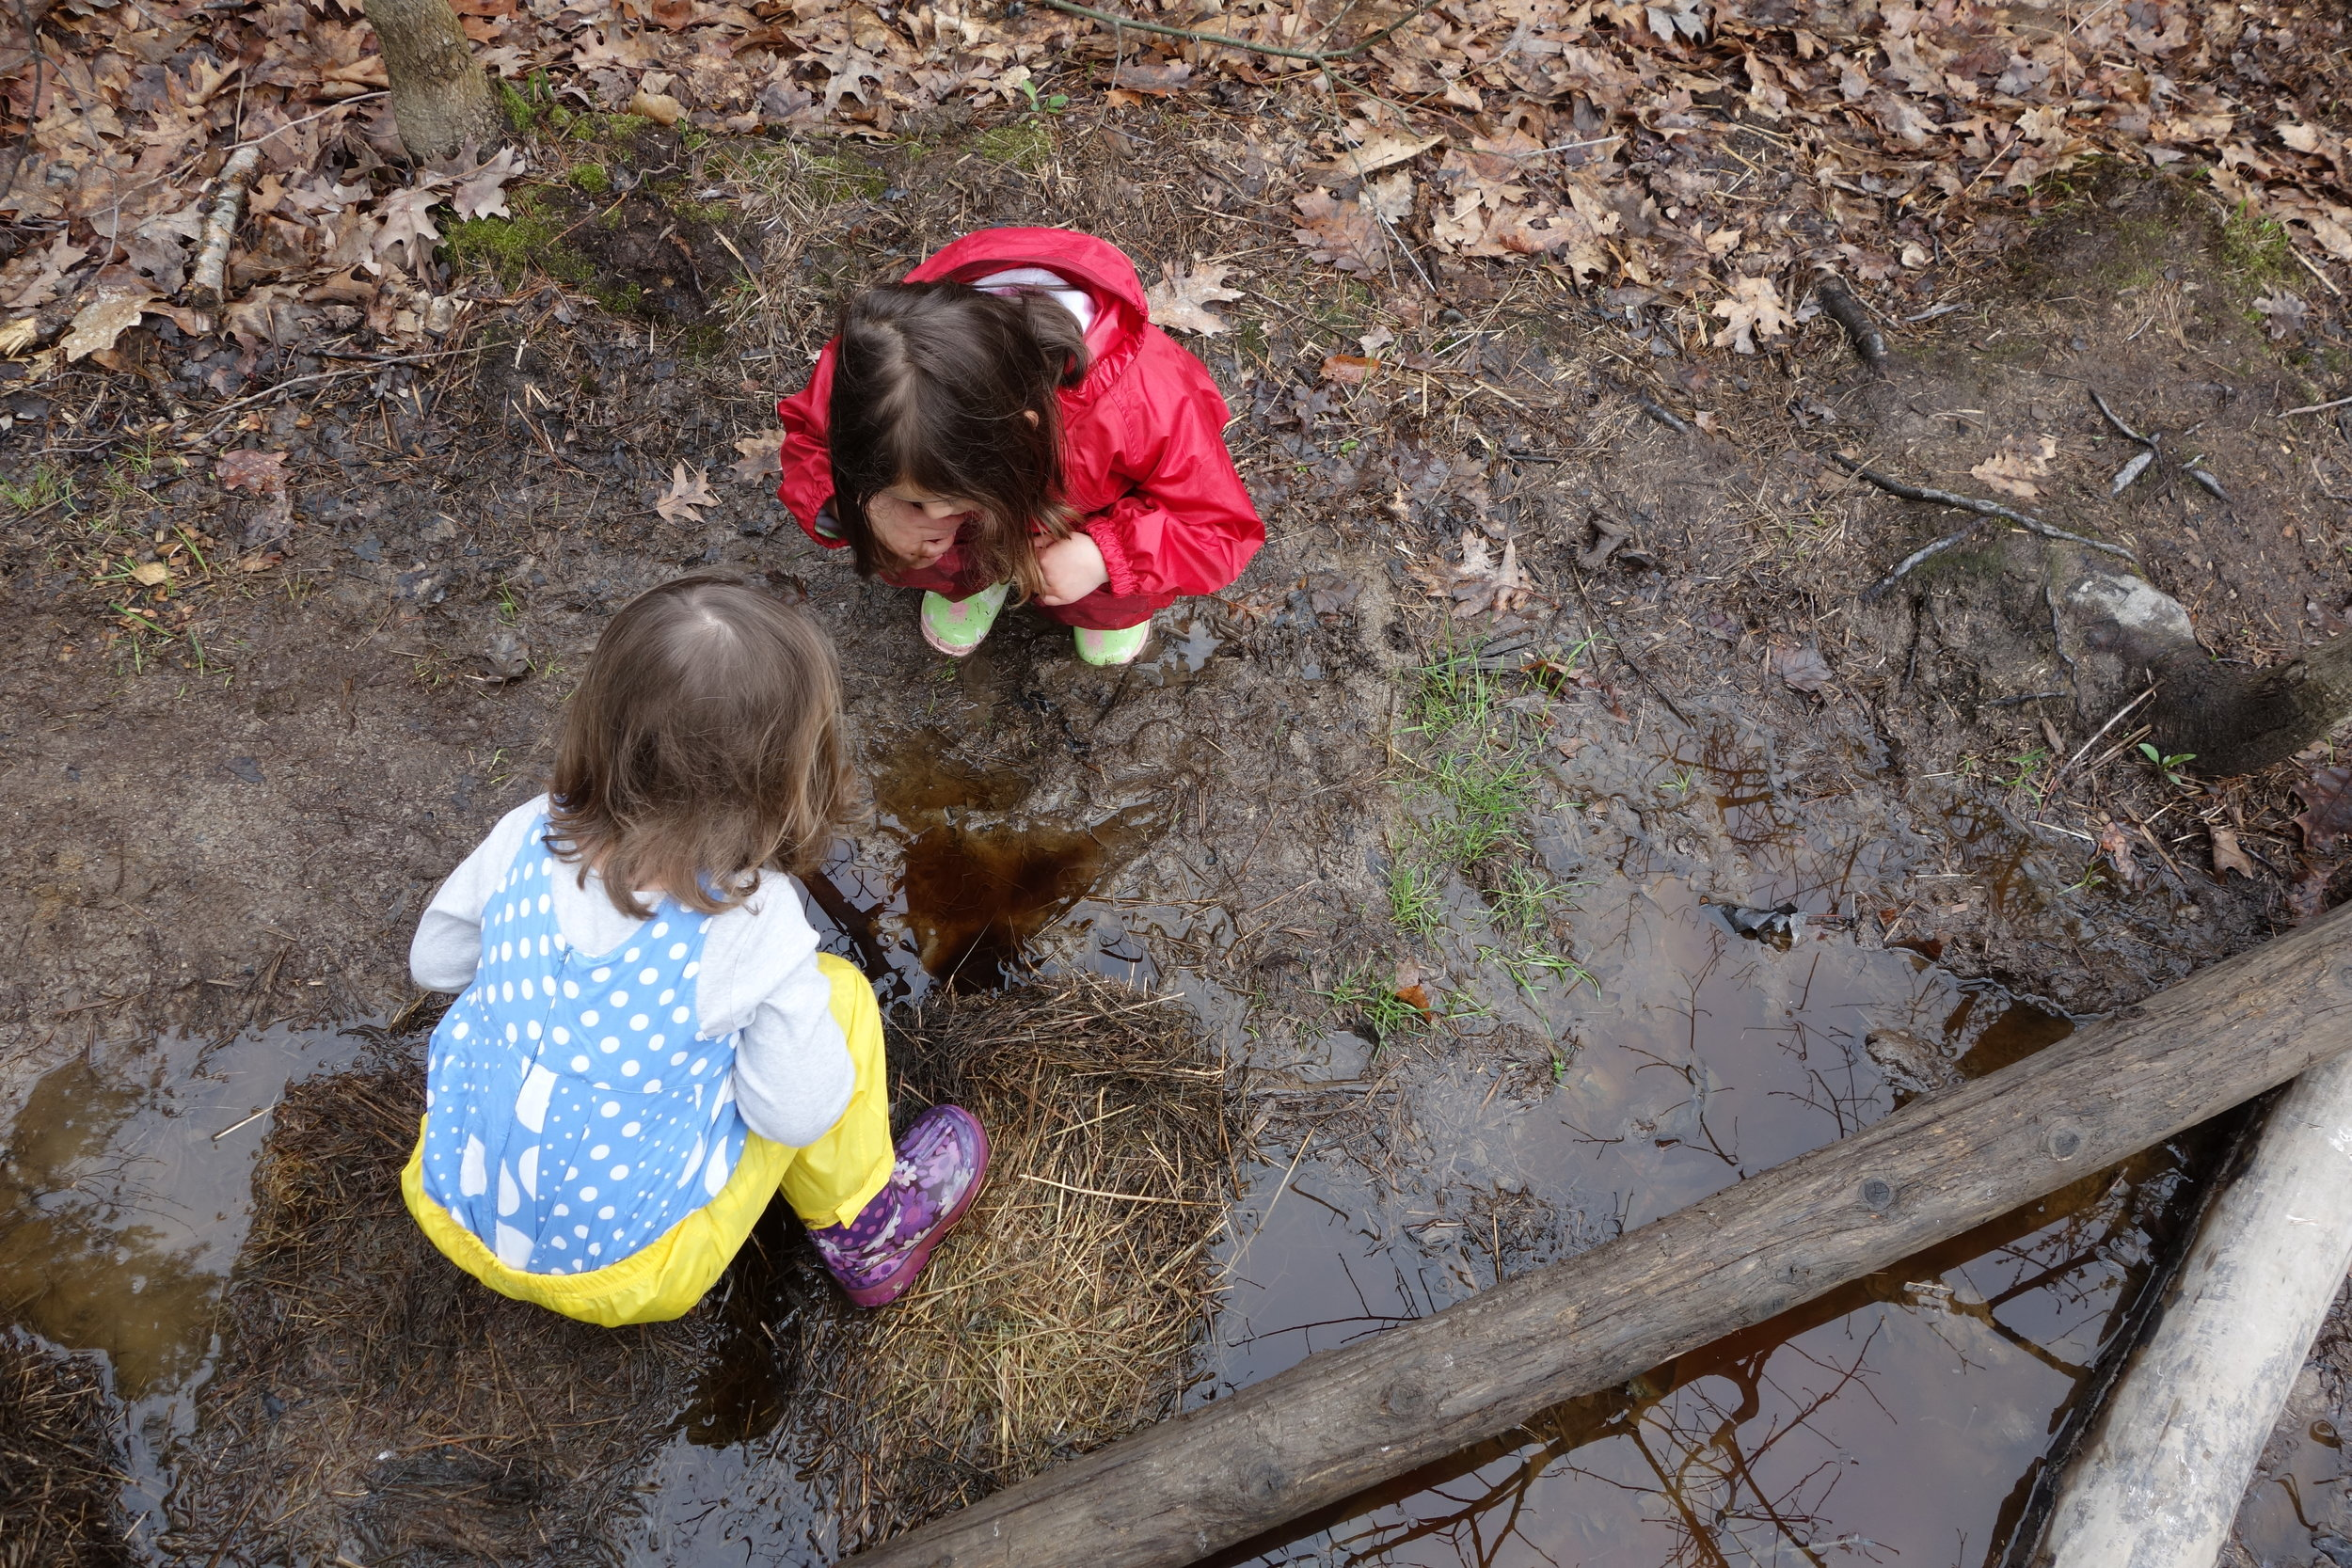 In the spring you can usually find a good mud hole on our school playground.